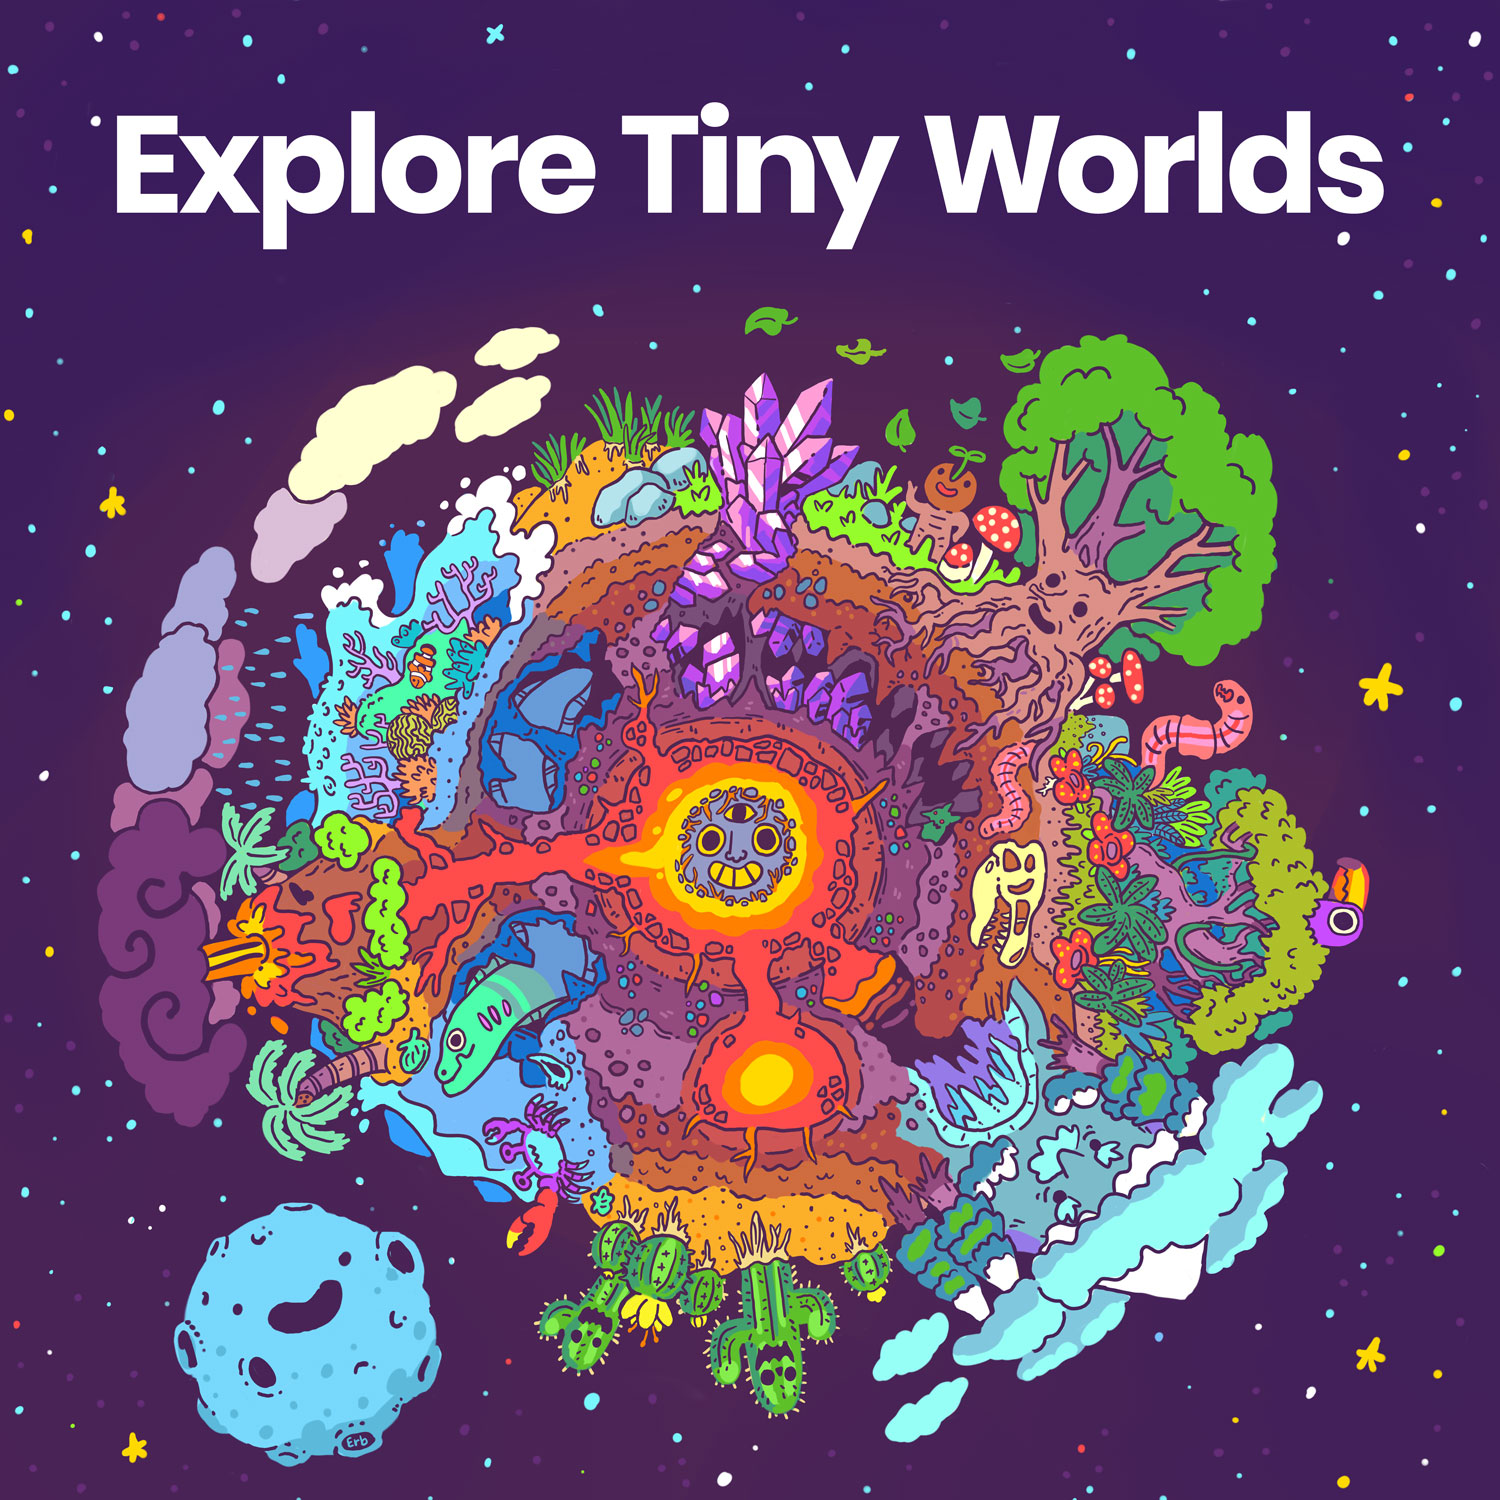 Explore Tiny Worlds album art by @Erb